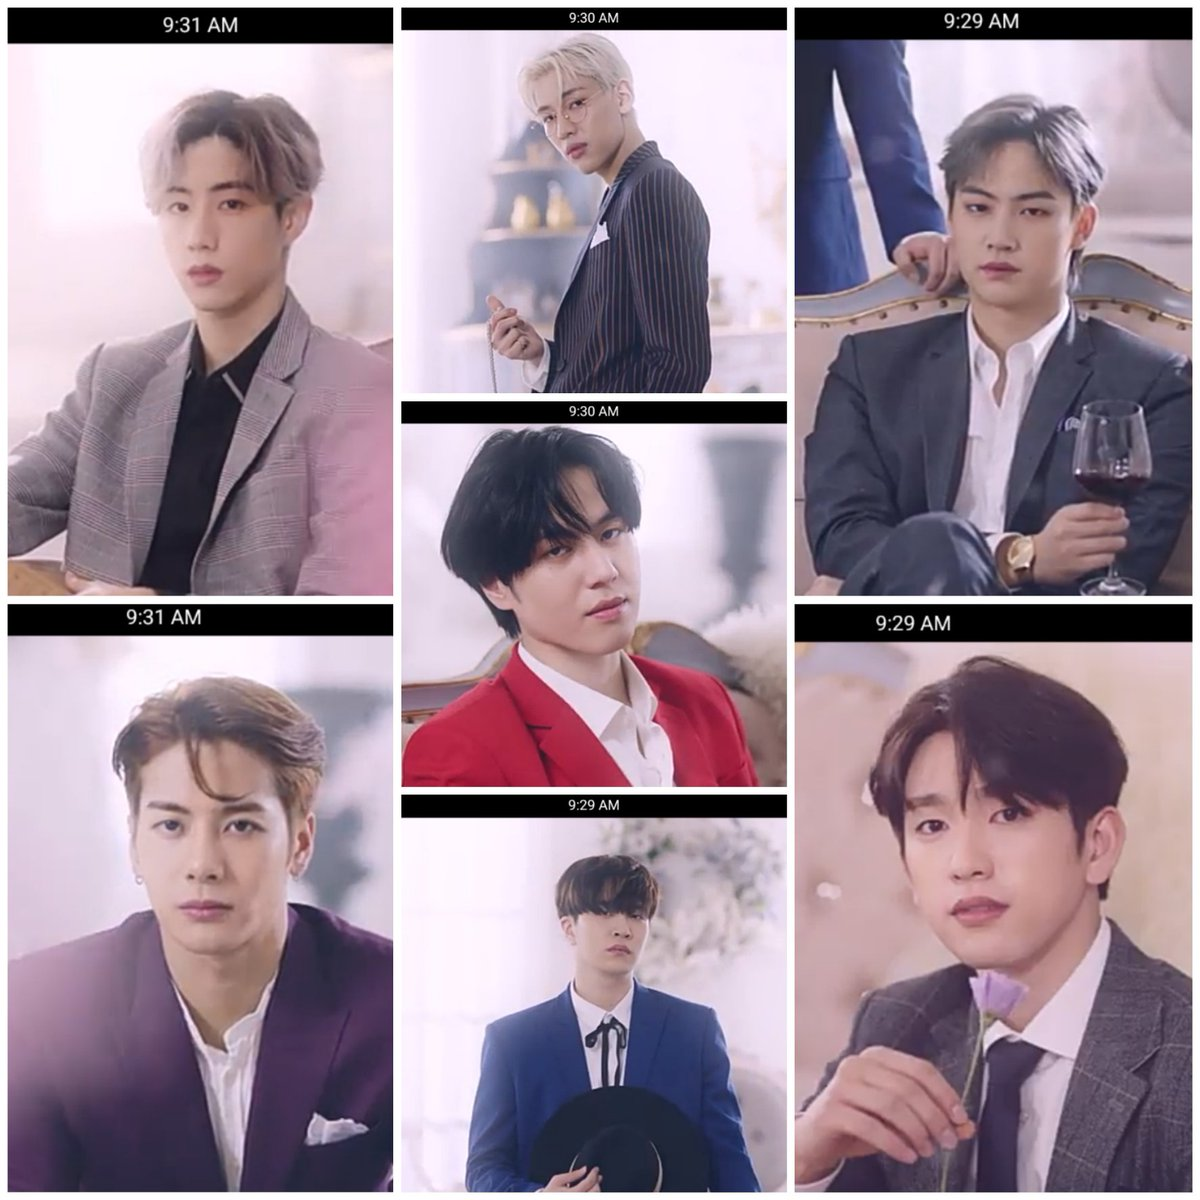 It's nice to start of my day with these beautiful men right here  #GOT7 #갓세븐